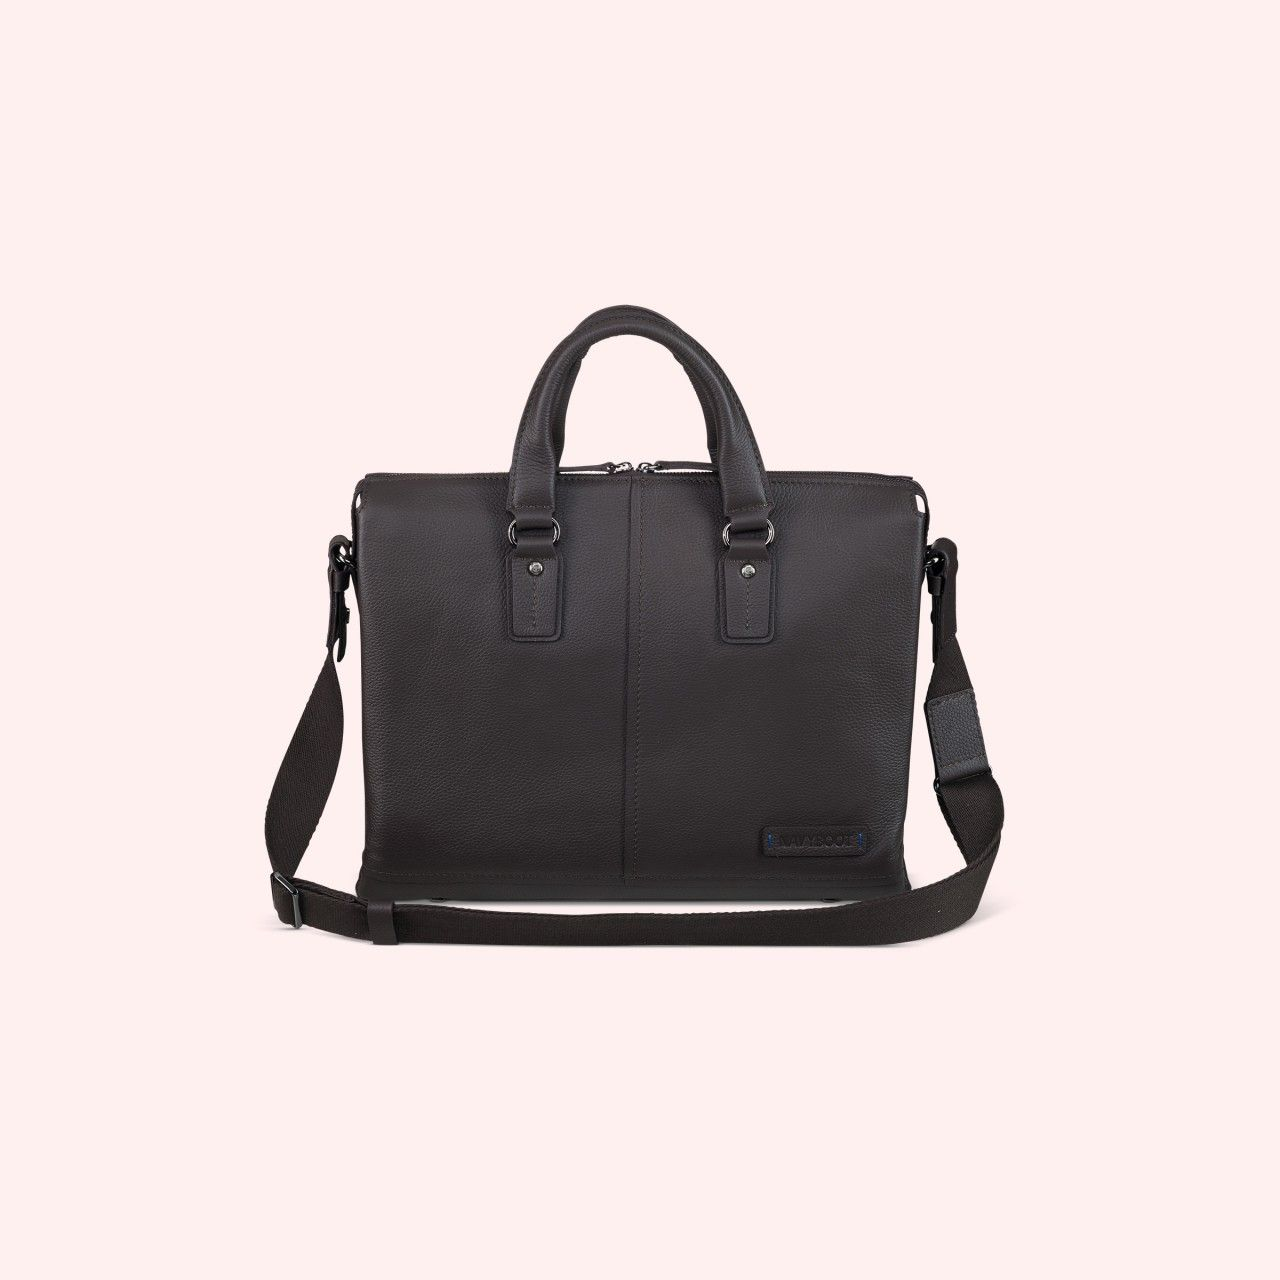 384a4c20136d navyboot business bag - Google Search Shopping Lists, Gifts For Her,  Grocery Lists,